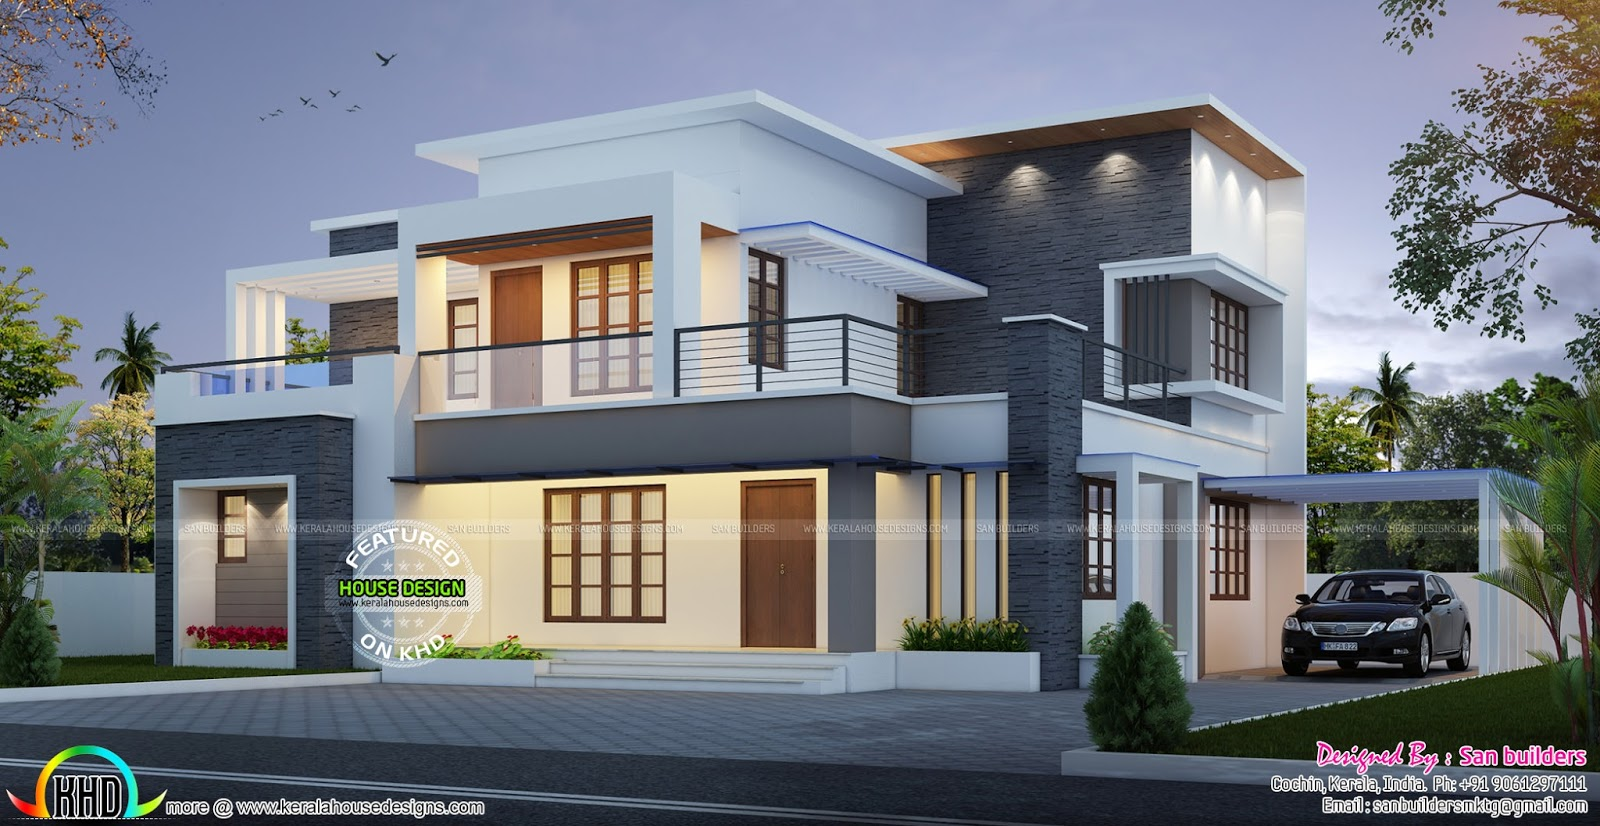 House plan and elevation by san builders kerala home for Elevation of kerala homes